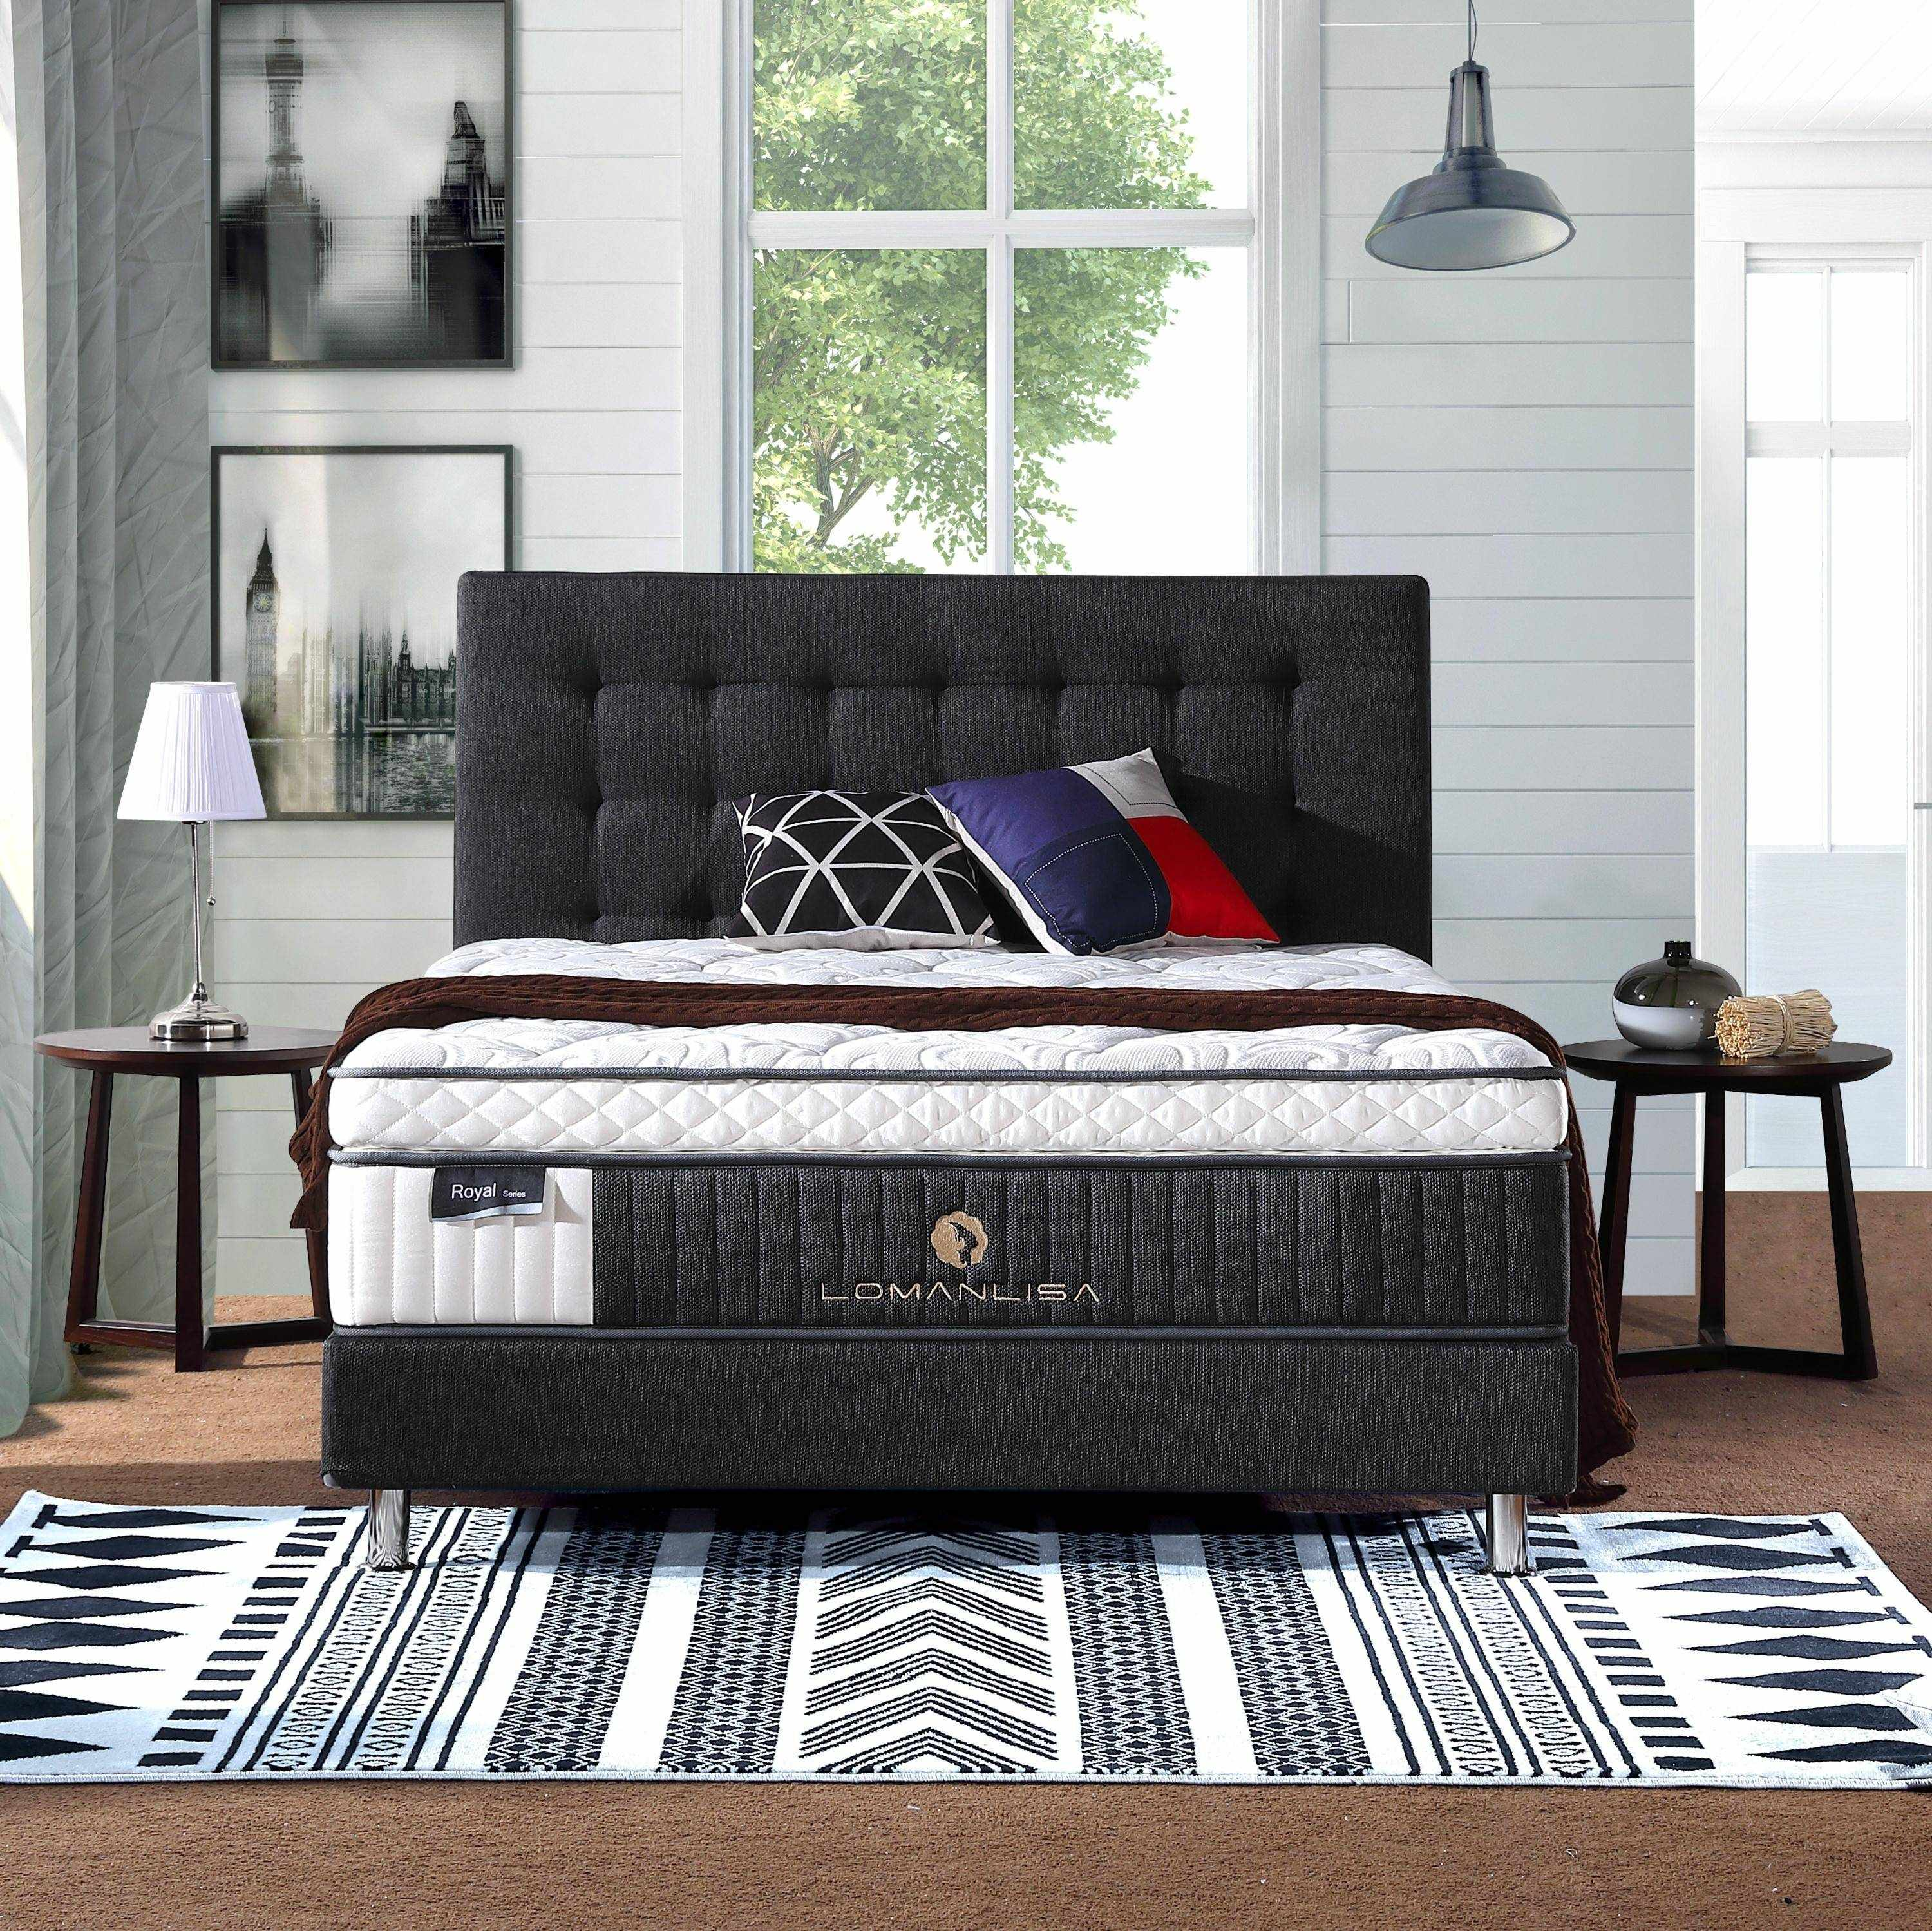 JLH Double Layers 5 Zoned Pocket Spring Luxury Design with Convoluted Foam and High Quality Knitted Fabric Double Spring Mattresses image2